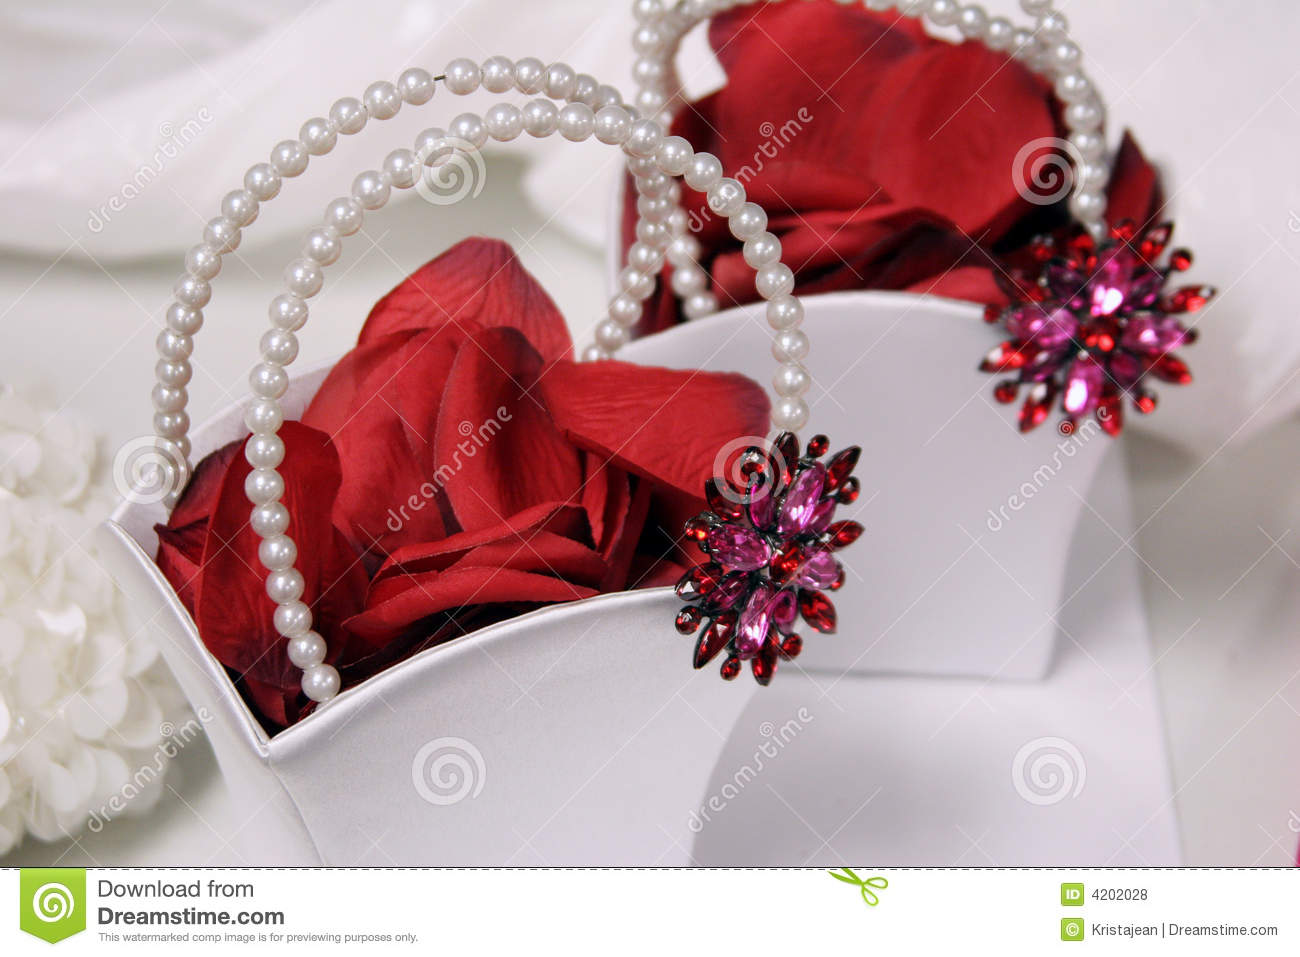 Flower girl baskets stock photo image of petals brooch 4202028 white flower girl baskets filled with rose petals mightylinksfo